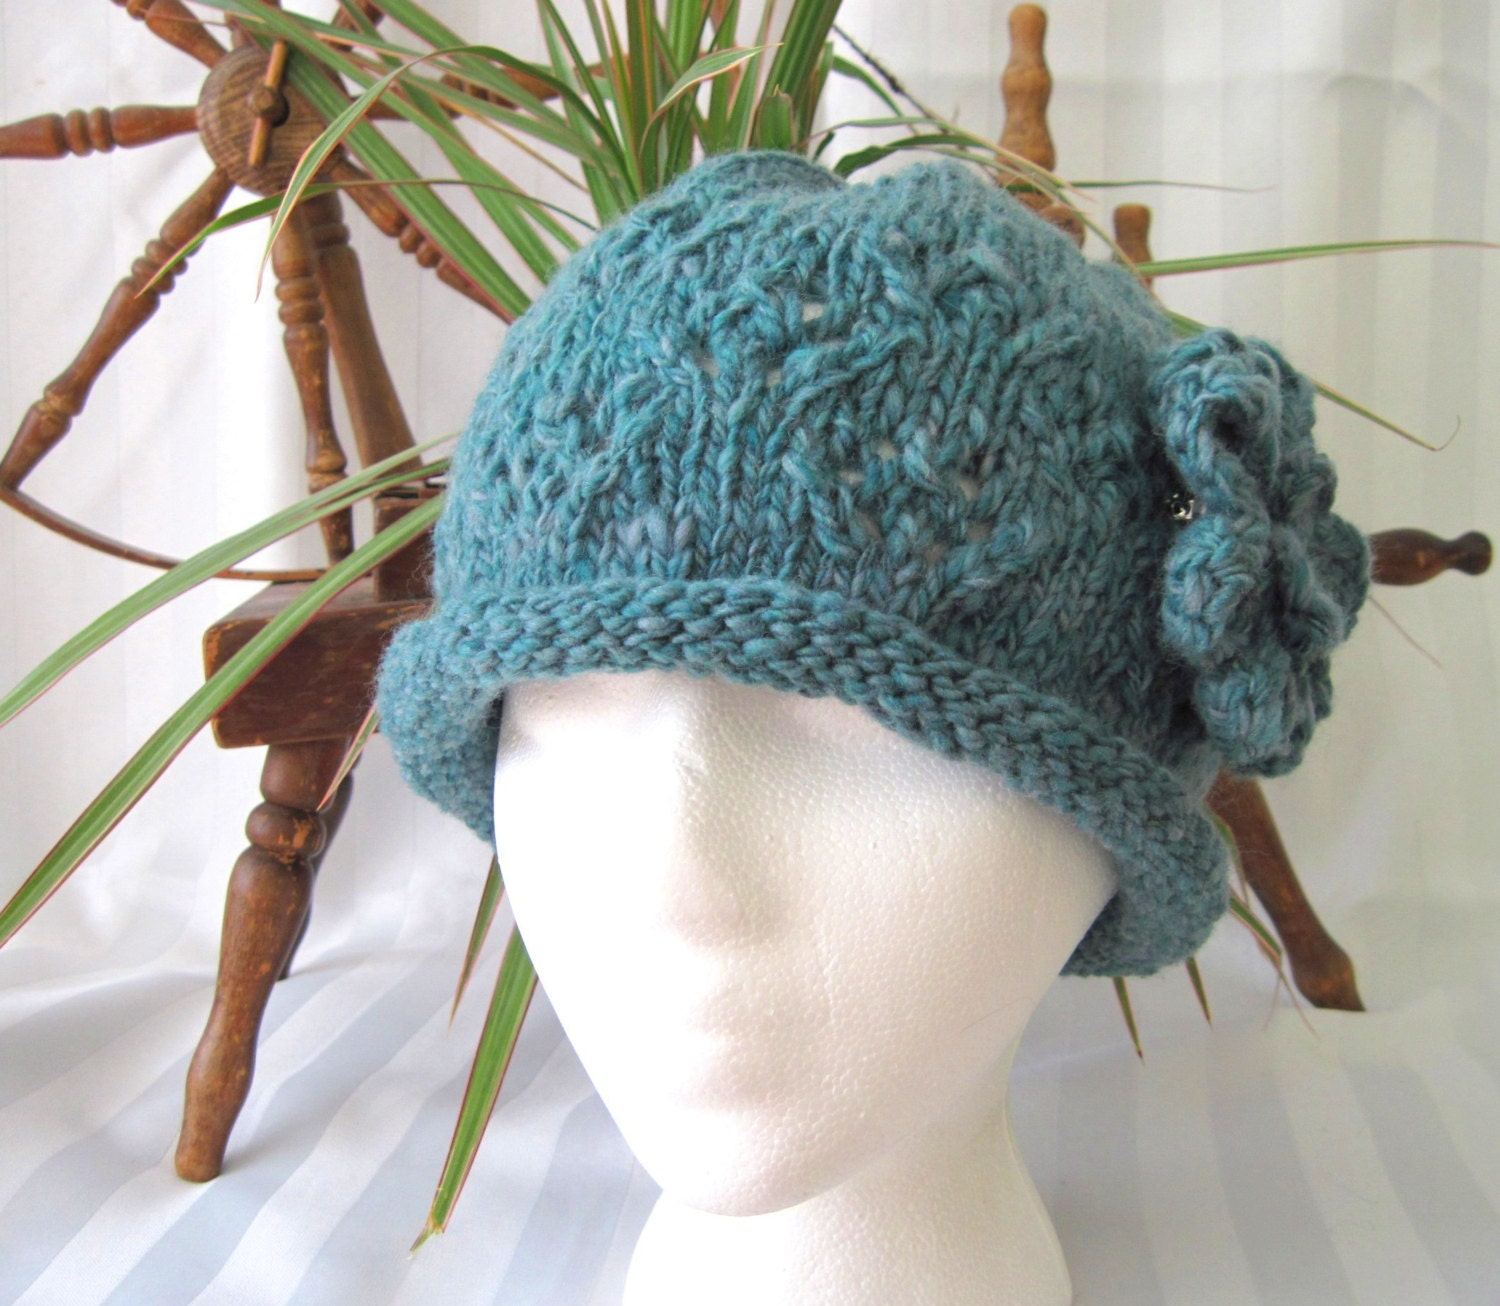 Handspun Diamond Lace Rolled Brim Hat with Crocheted Flower Pin. Handspun Wool Yarn. Heathered Dark Aqua. Greeny-Turquoise. - JoyfulHandKnits